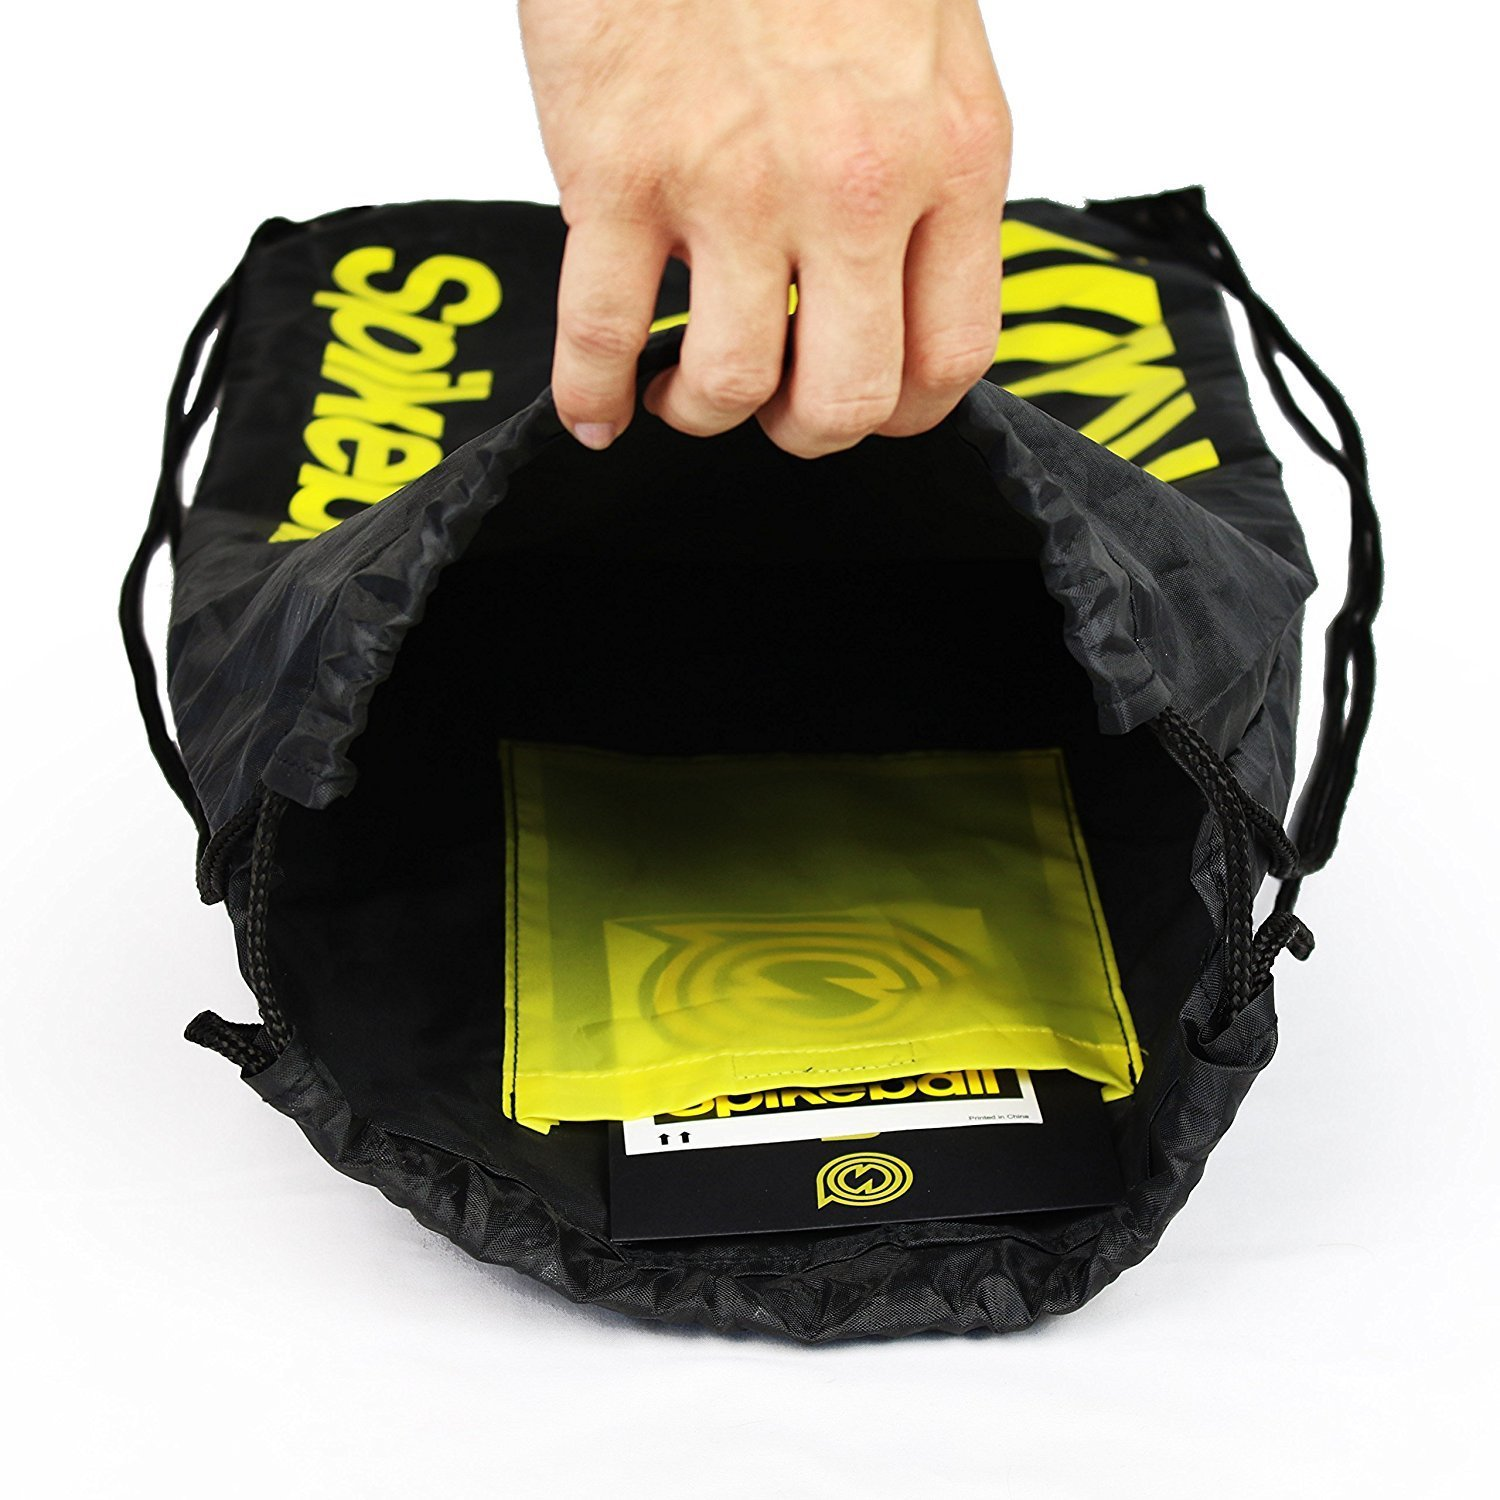 Spikeball 3 Ball Sports Game Set - Outdoor Indoor Gift for Teens, Family - Yard, Lawn, Beach, Tailgate - Includes Playing Net, 3 Balls, Drawstring Bag, Rule Book- As Seen on Shark Tank (3 Ball Set) by Spikeball (Image #8)